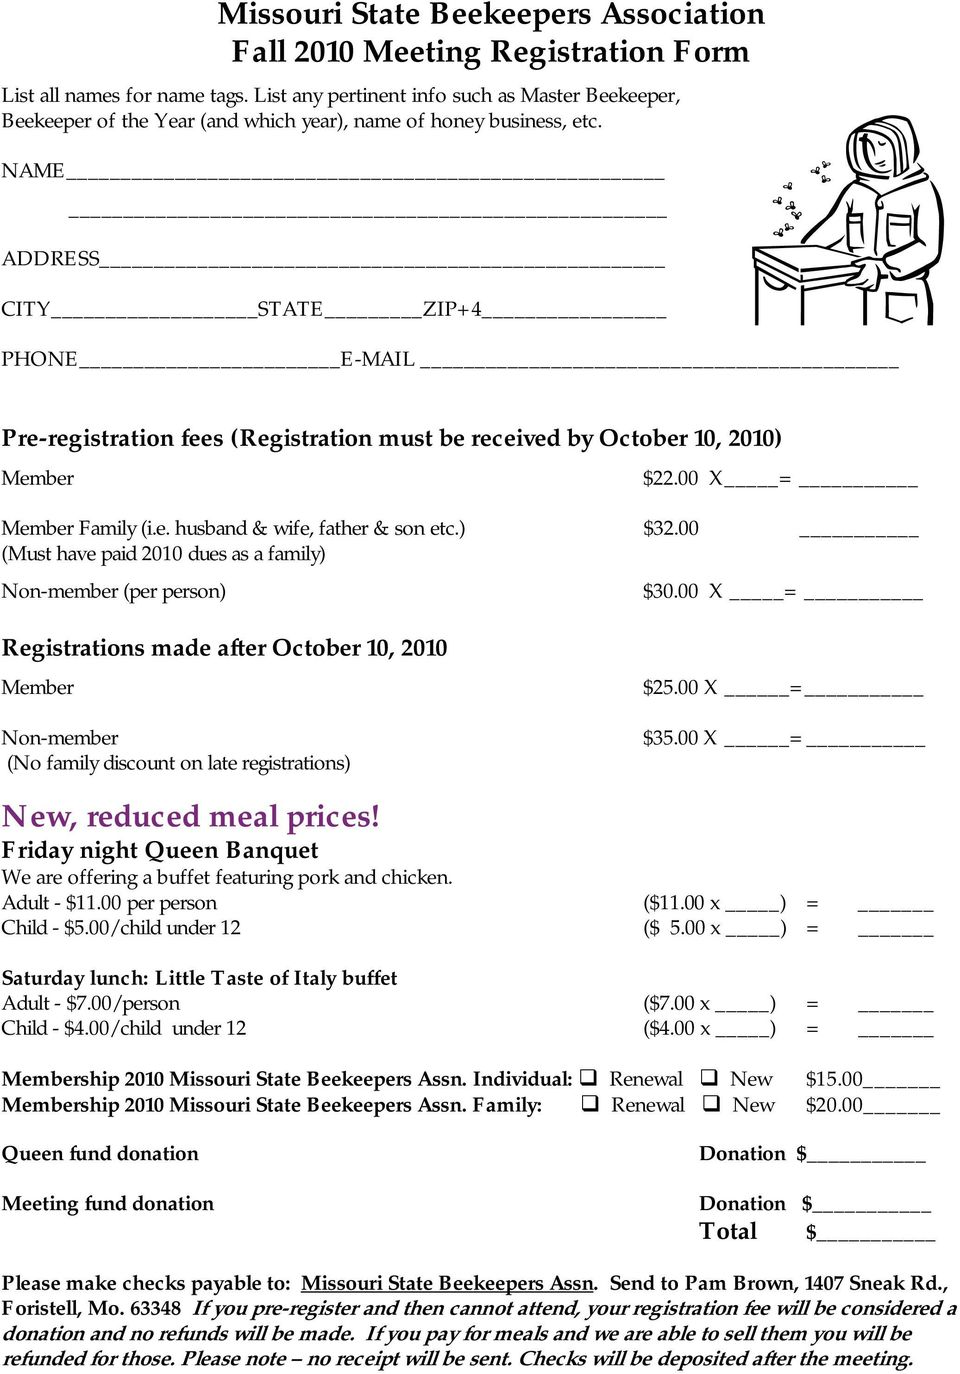 NAME ADDRESS CITY STATE ZIP+4 PHONE E-MAIL Pre-registration fees (Registration must be received by October 10, 2010) Member $22.00 X = Member Family (i.e. husband & wife, father & son etc.) $32.